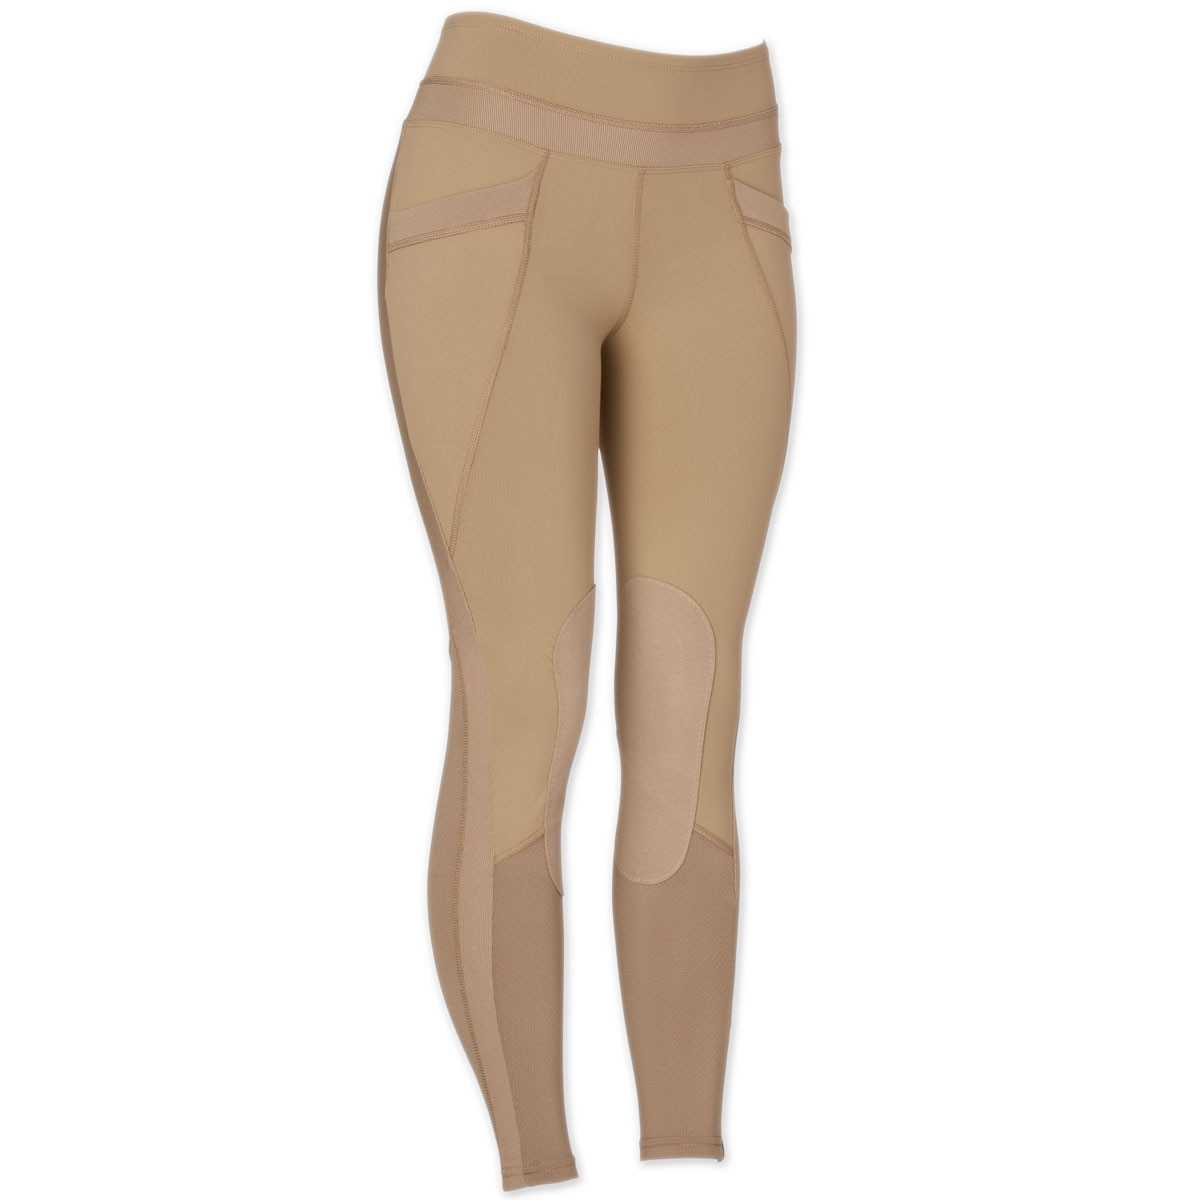 Irideon Synergy Knee Patch Tights